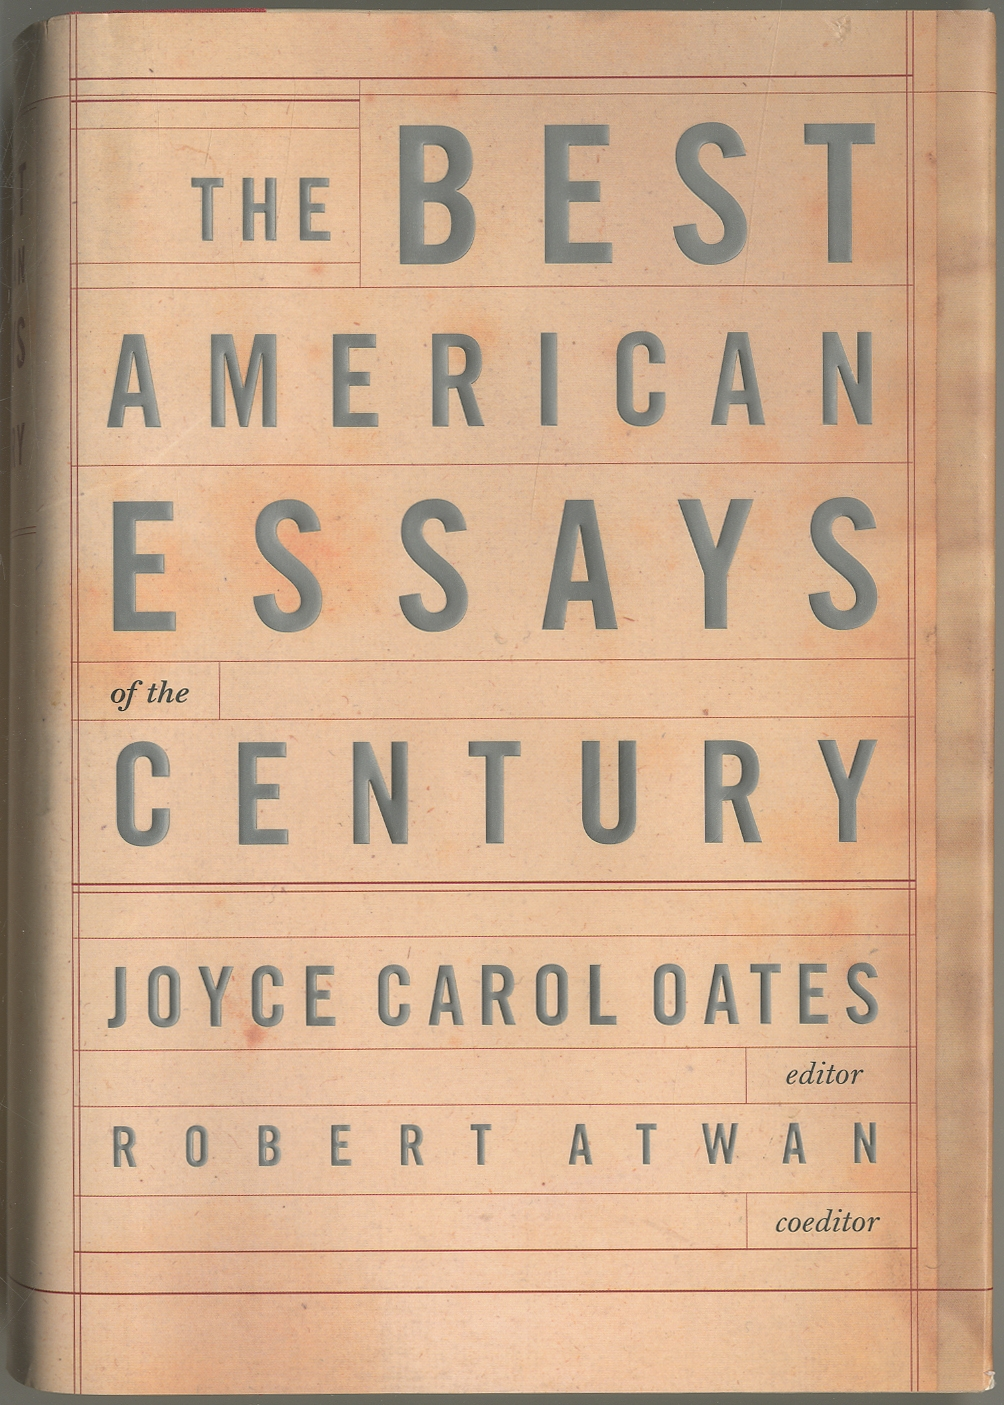 the best american essays of the century edited by joyce carol oates